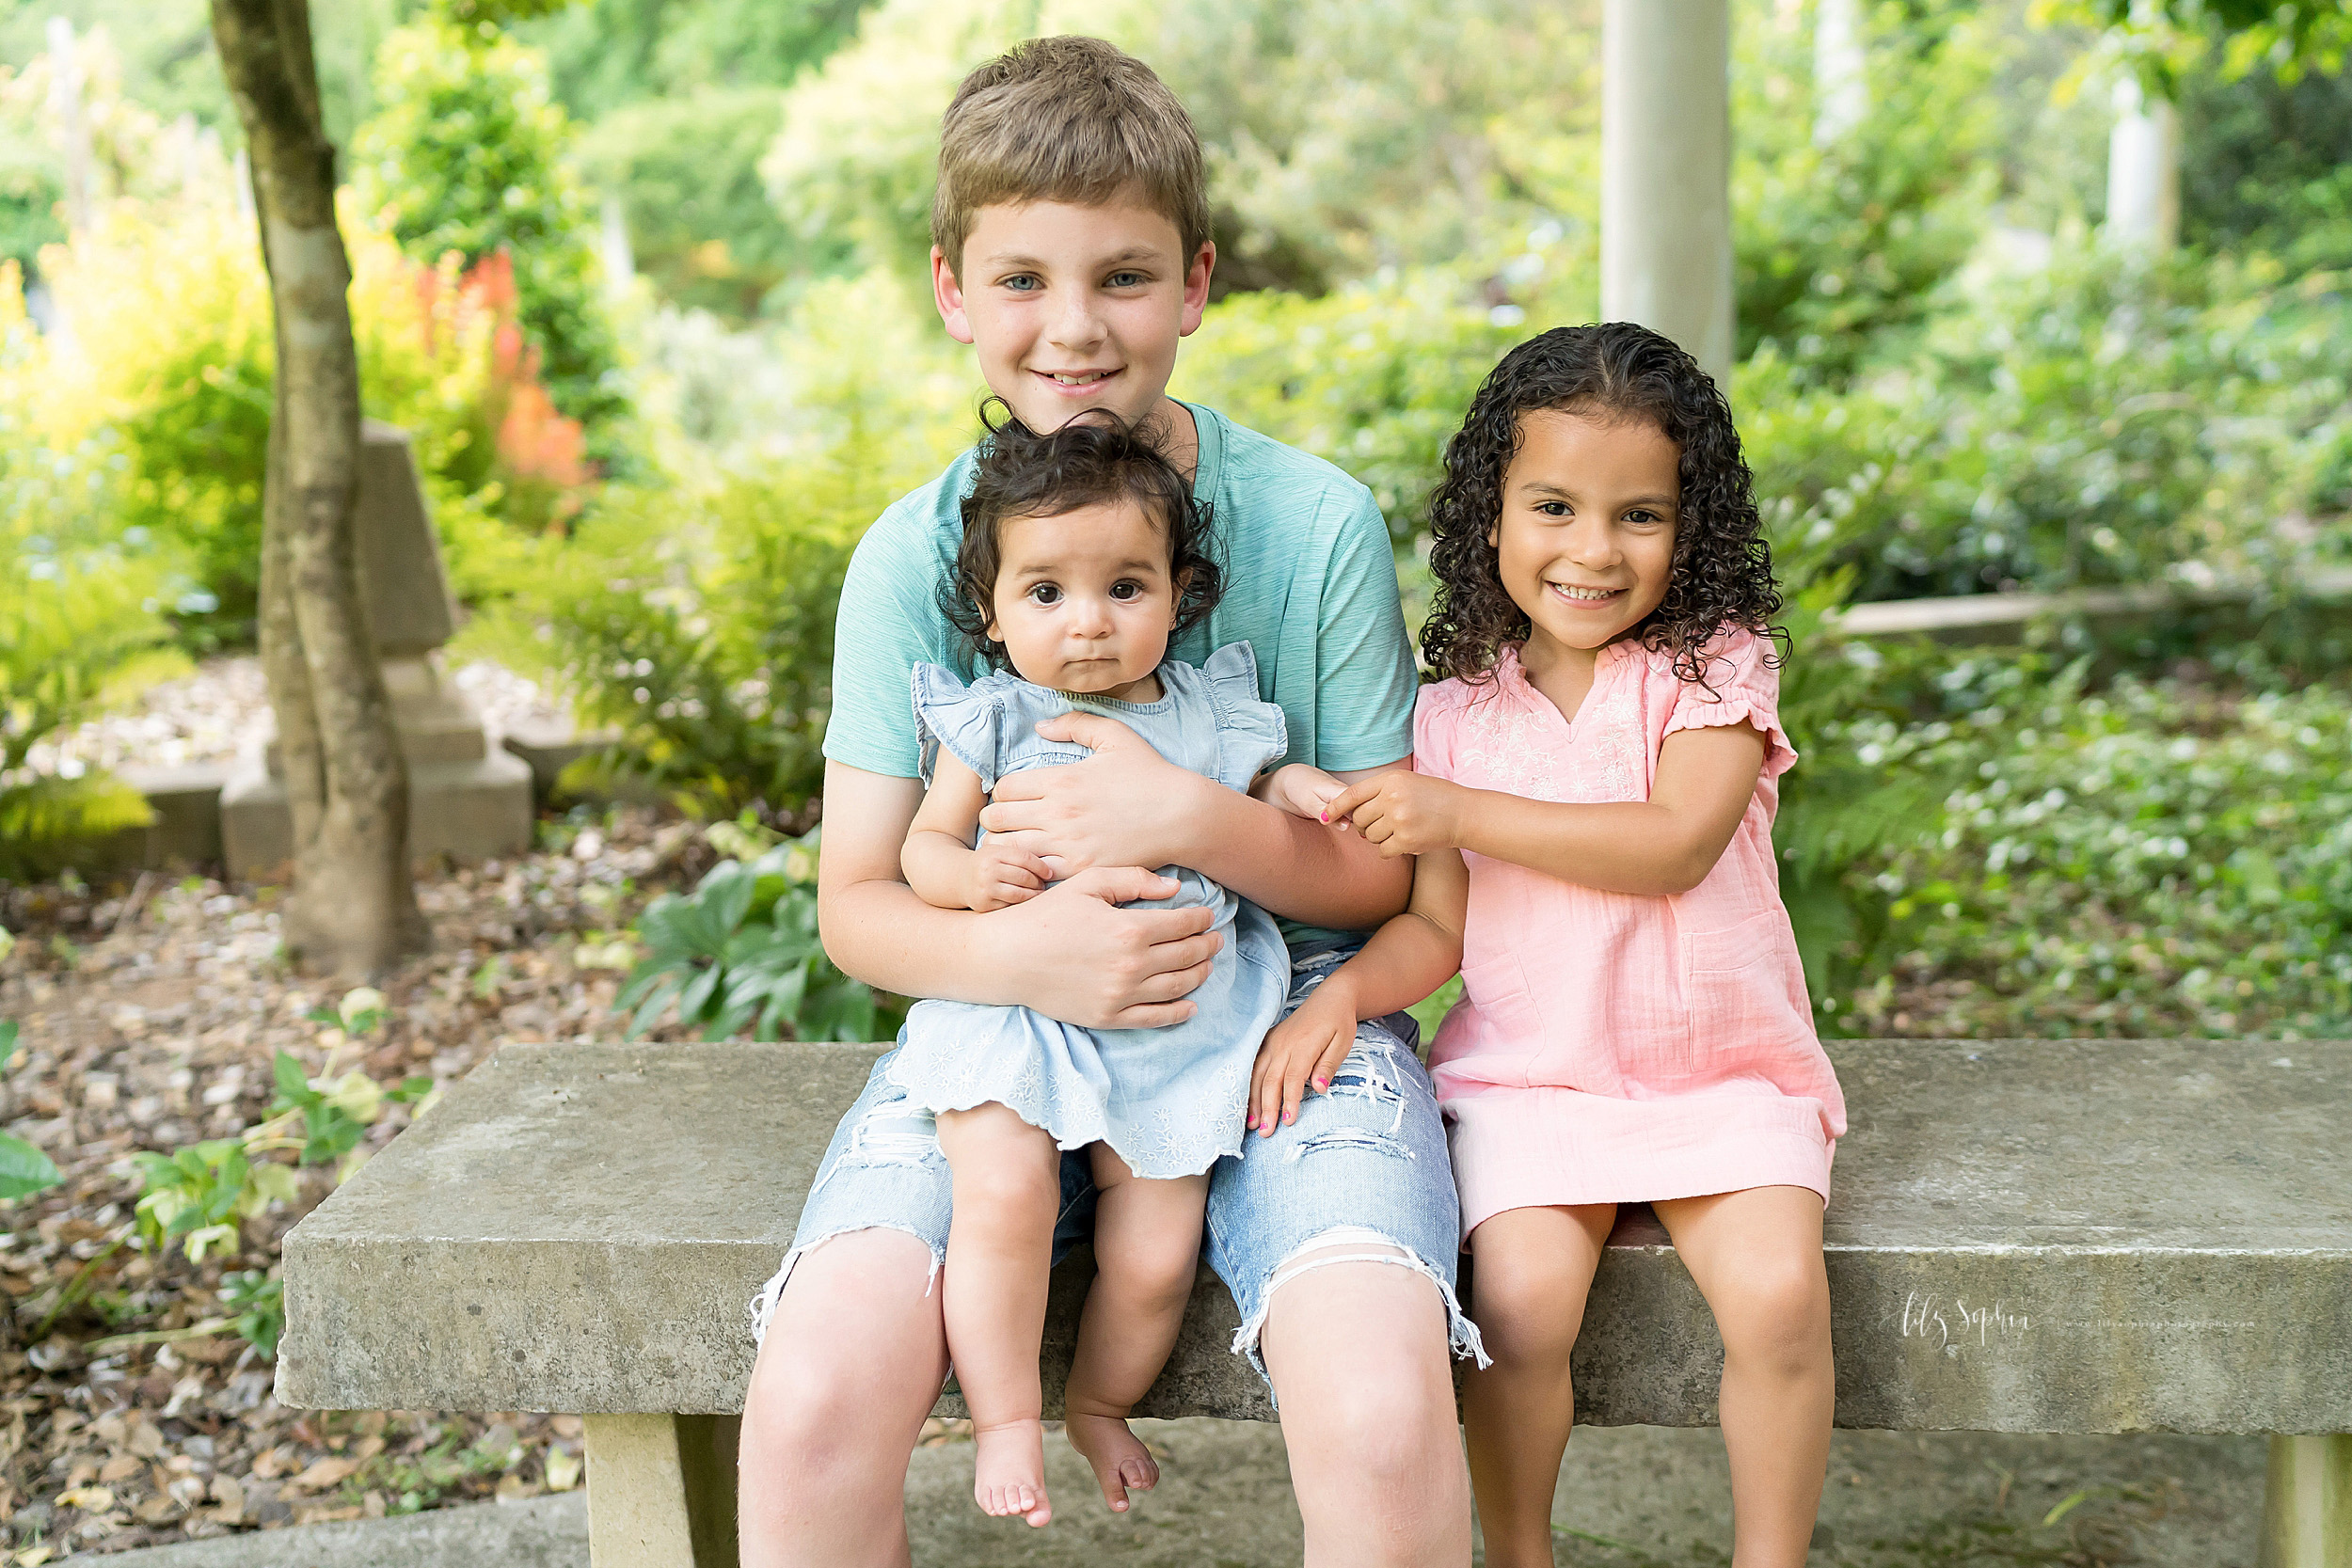 Photo of three happy siblings sitting in an Atlanta garden.  The brother and two sisters are sitting on a cement bench.  The older brother is holding his baby sister on his lap.  His younger sister is sitting next to him and is holding her baby sister's hand.